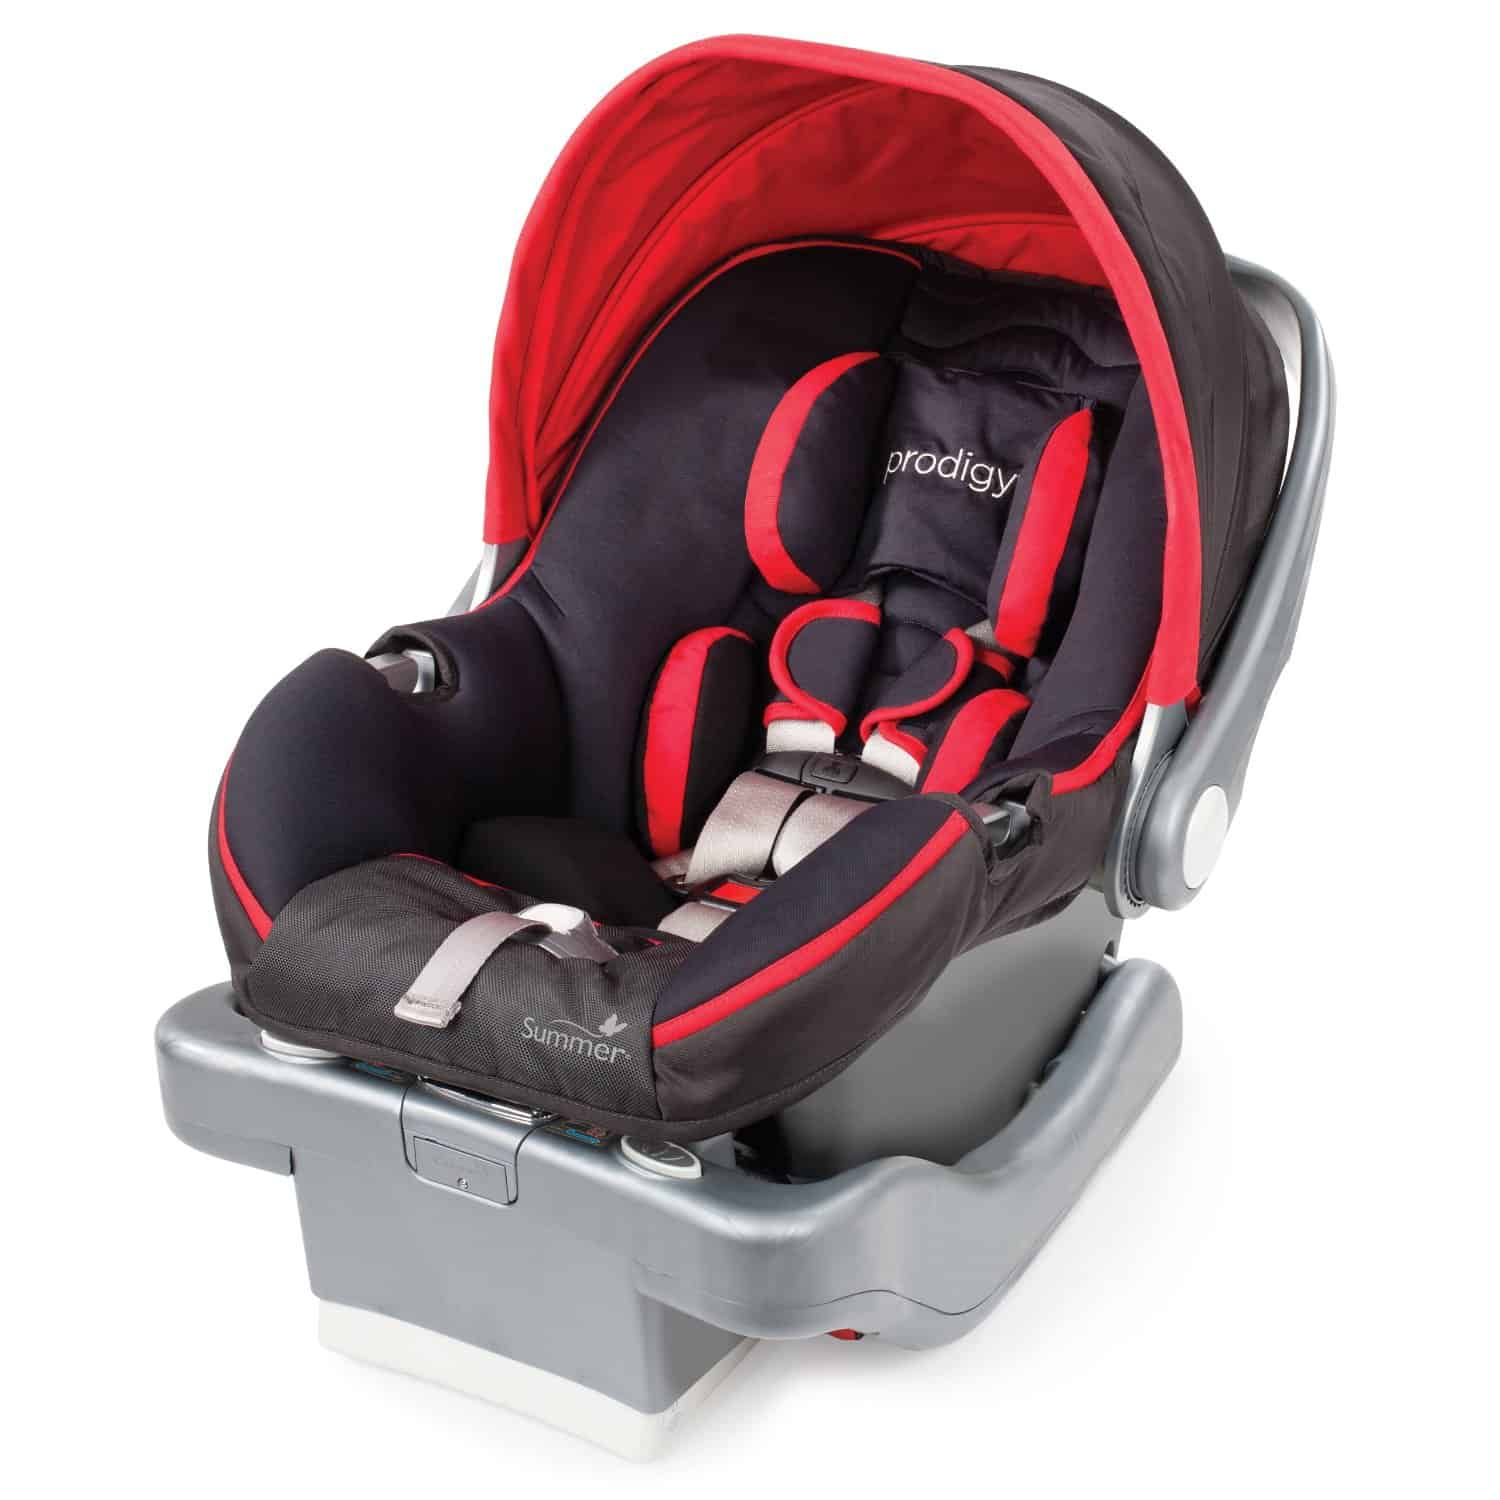 Summer Prodigy Infant Car Seat Safely Travel with your Baby